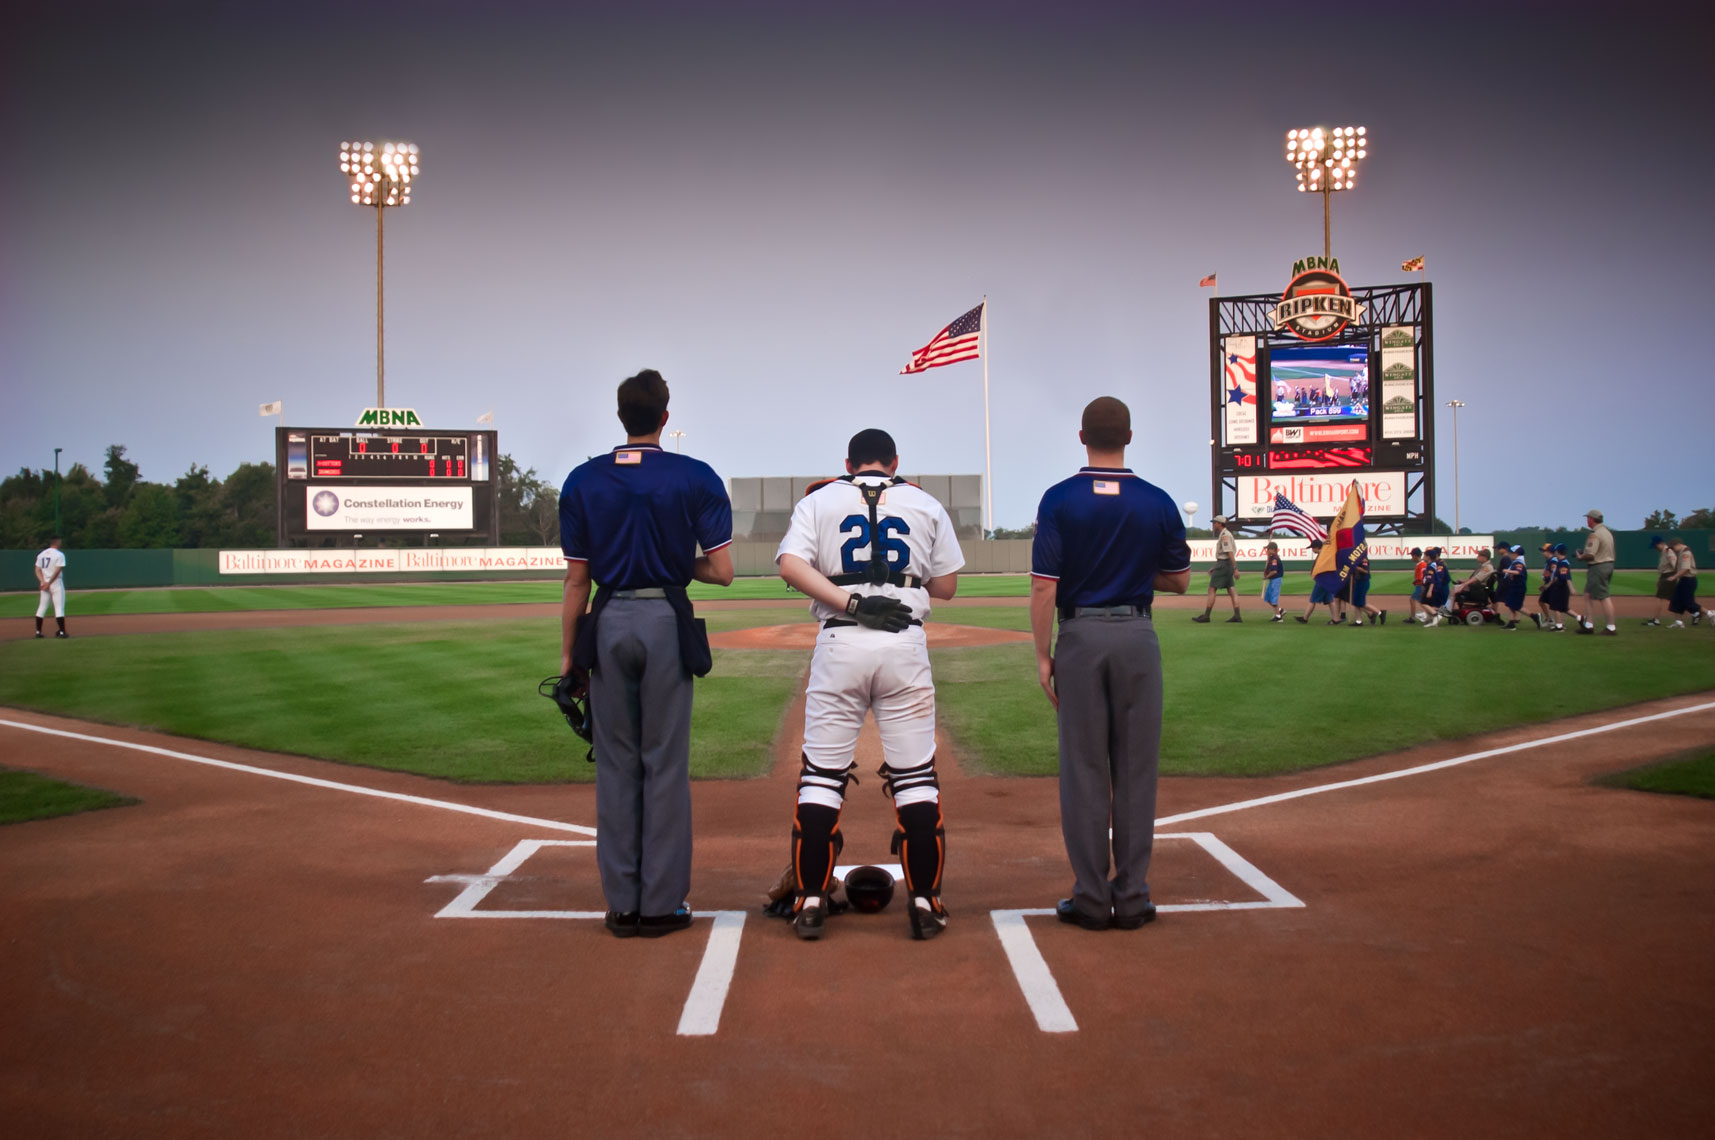 A catcher and umpires stand for the national anthem at the home of the Aberdeen Ironbirds